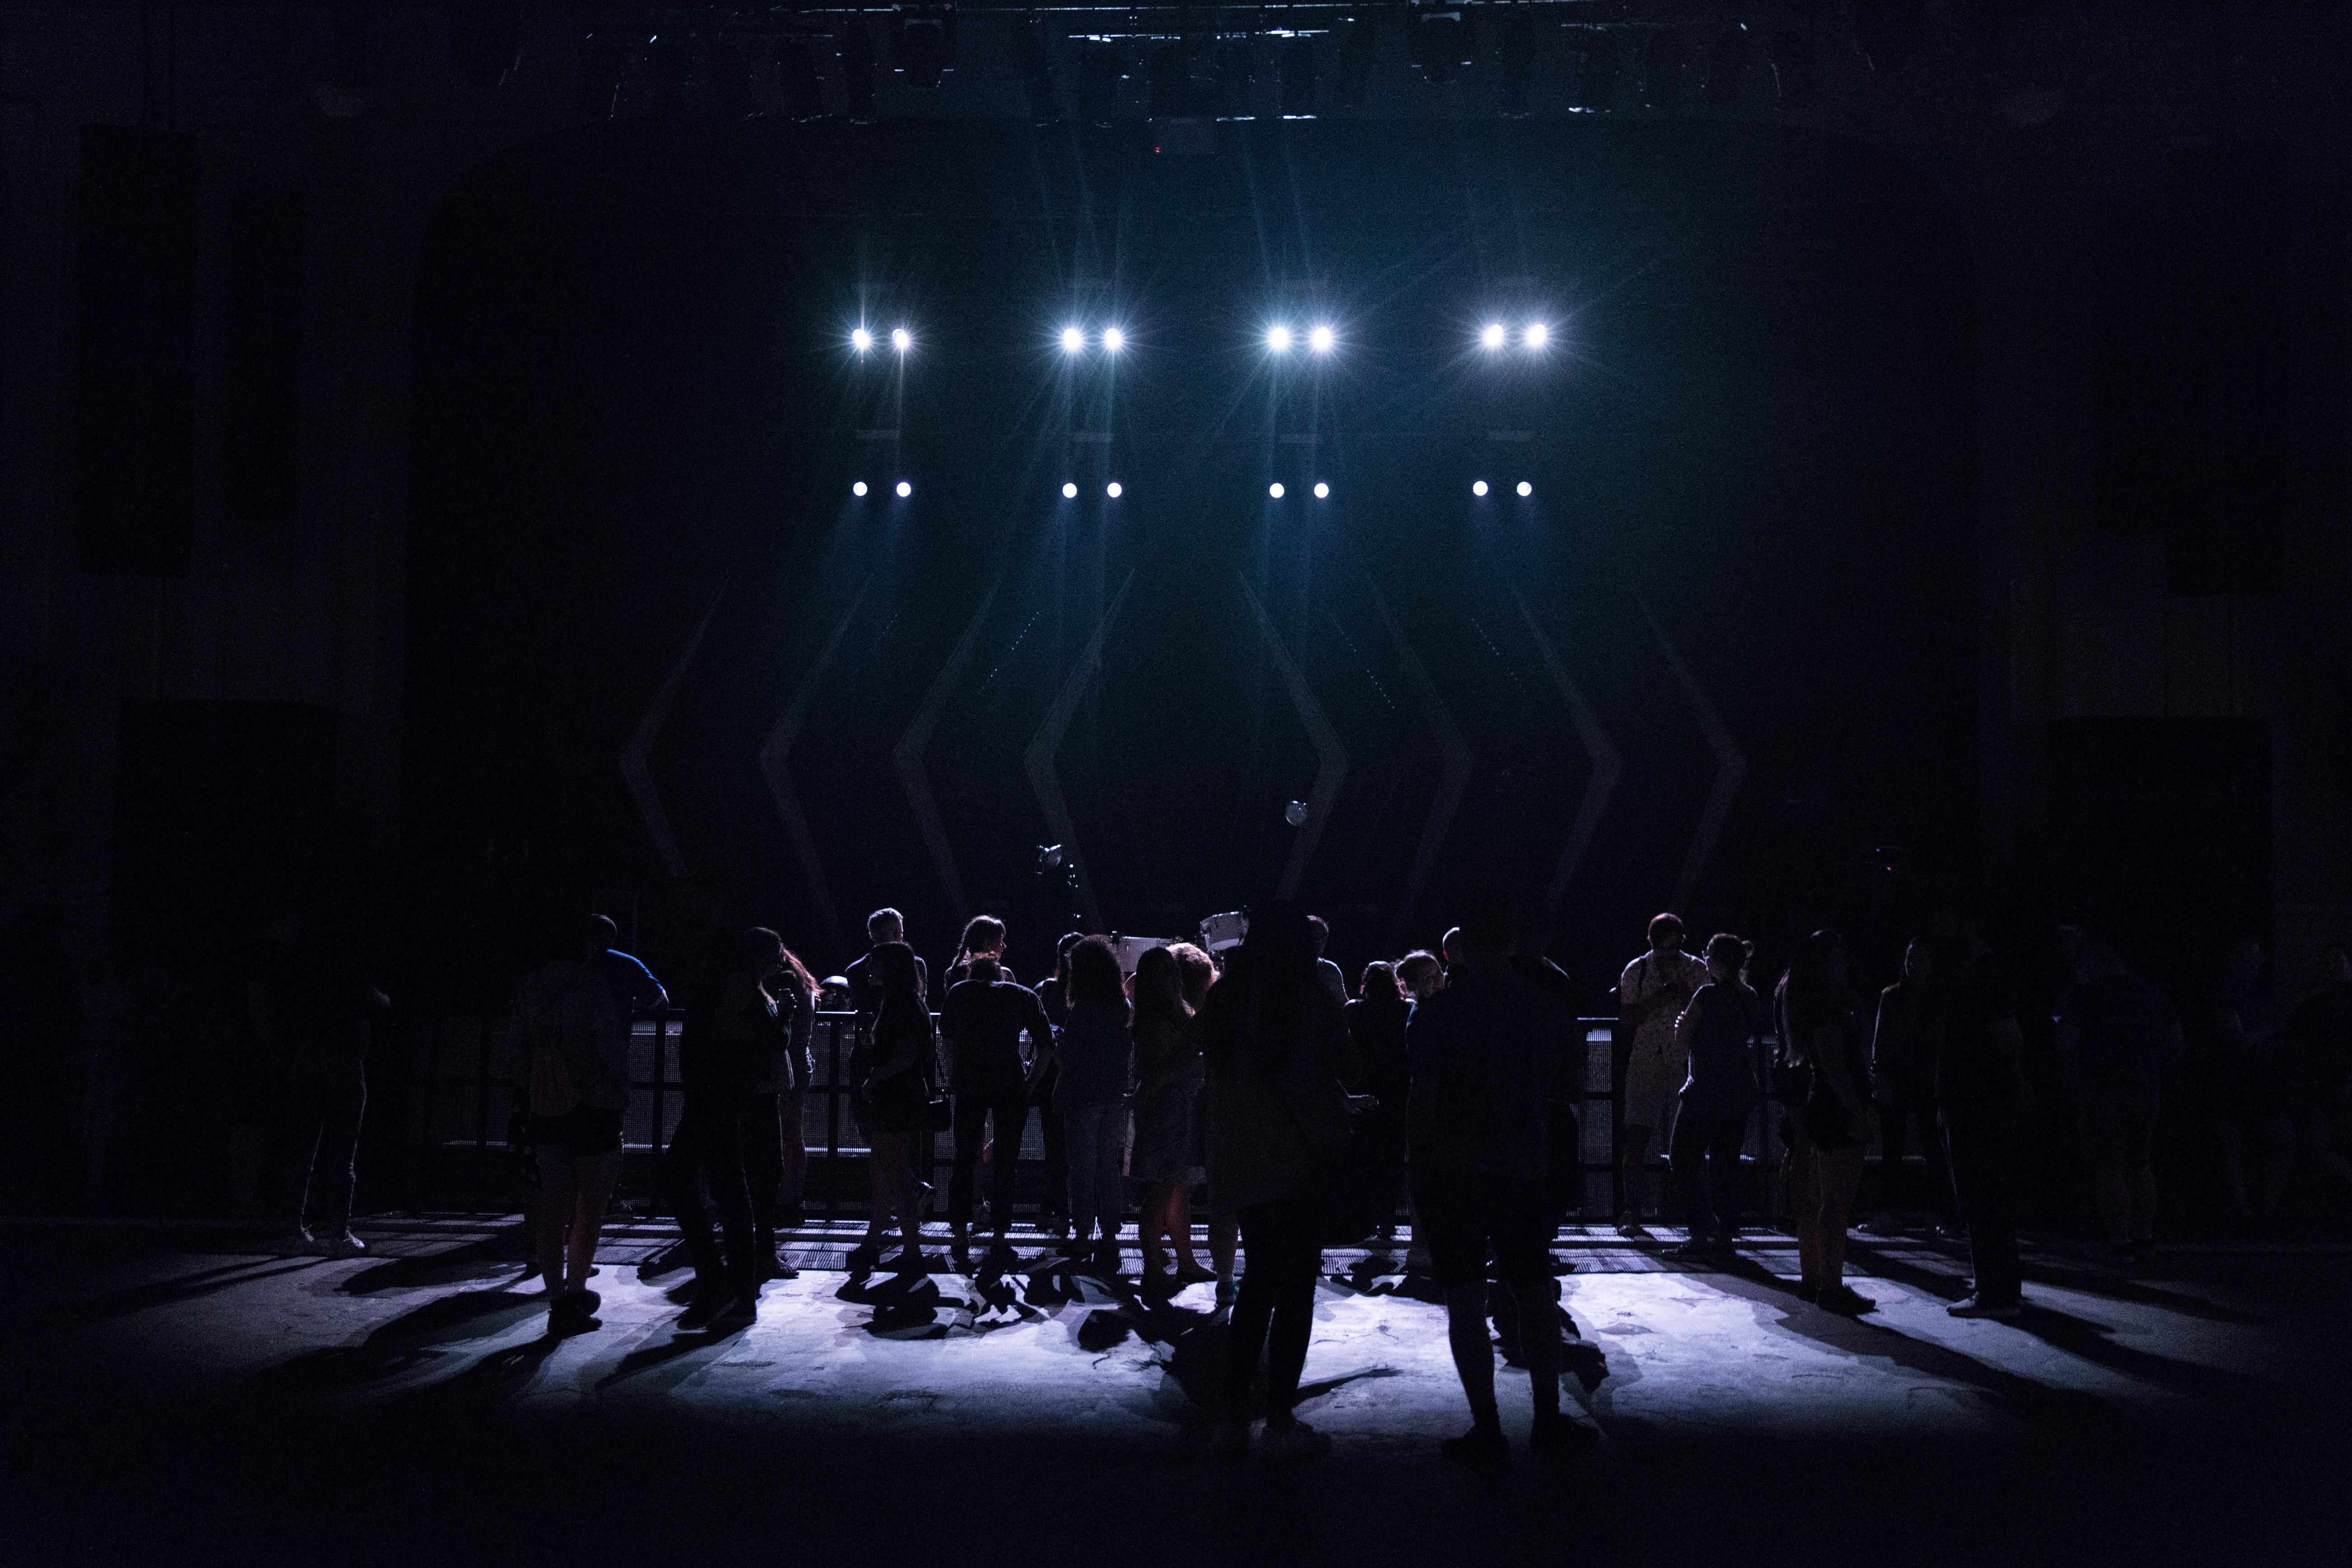 Silhouette Photography of People on Theater